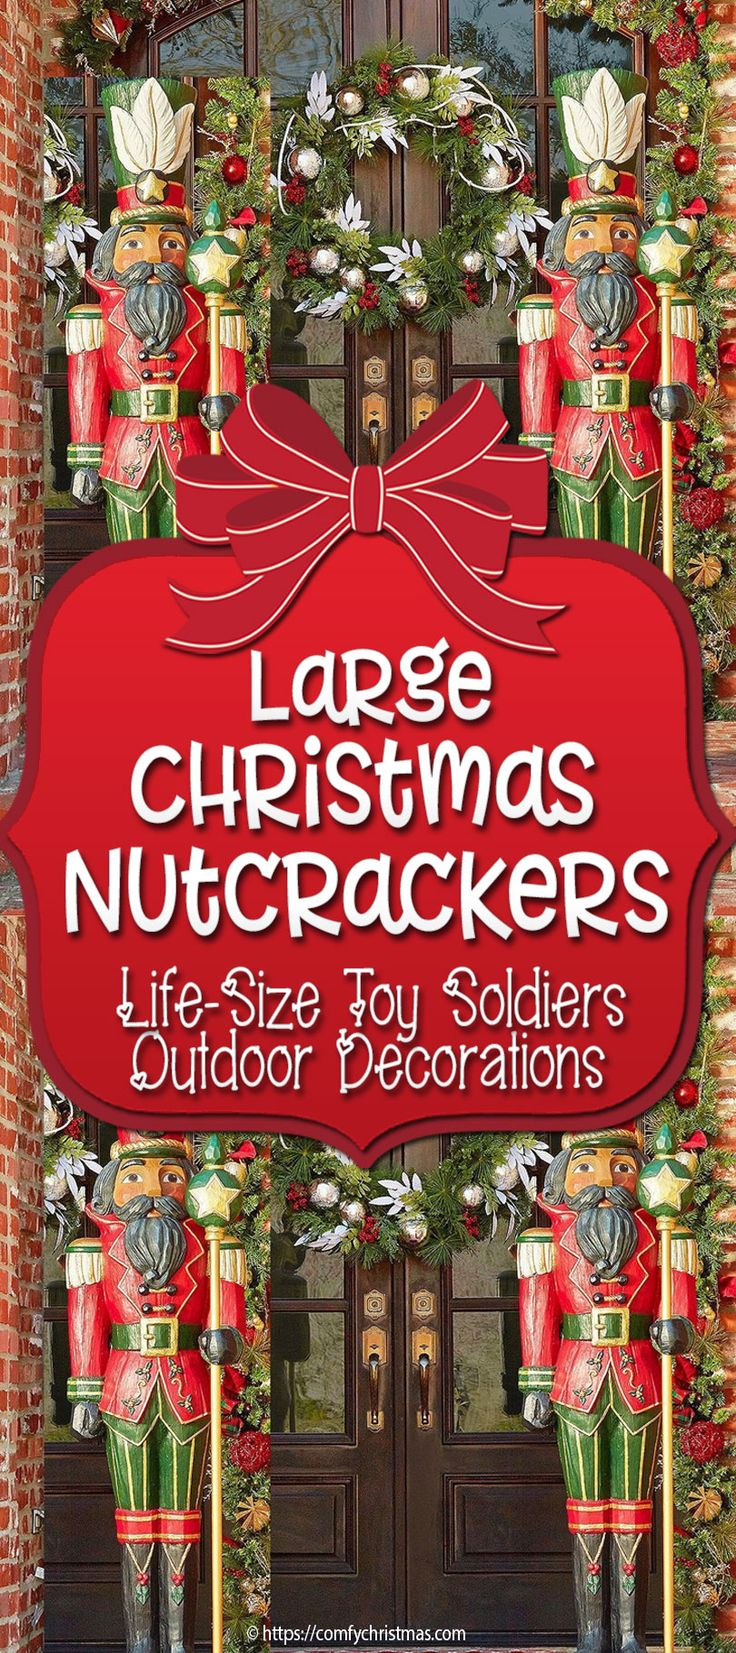 Are you Looking for a Large Outdoor Nutcracker Decoration? You'll find plenty of amazing life size nutcracker outdoor Christmas decorations for your home!